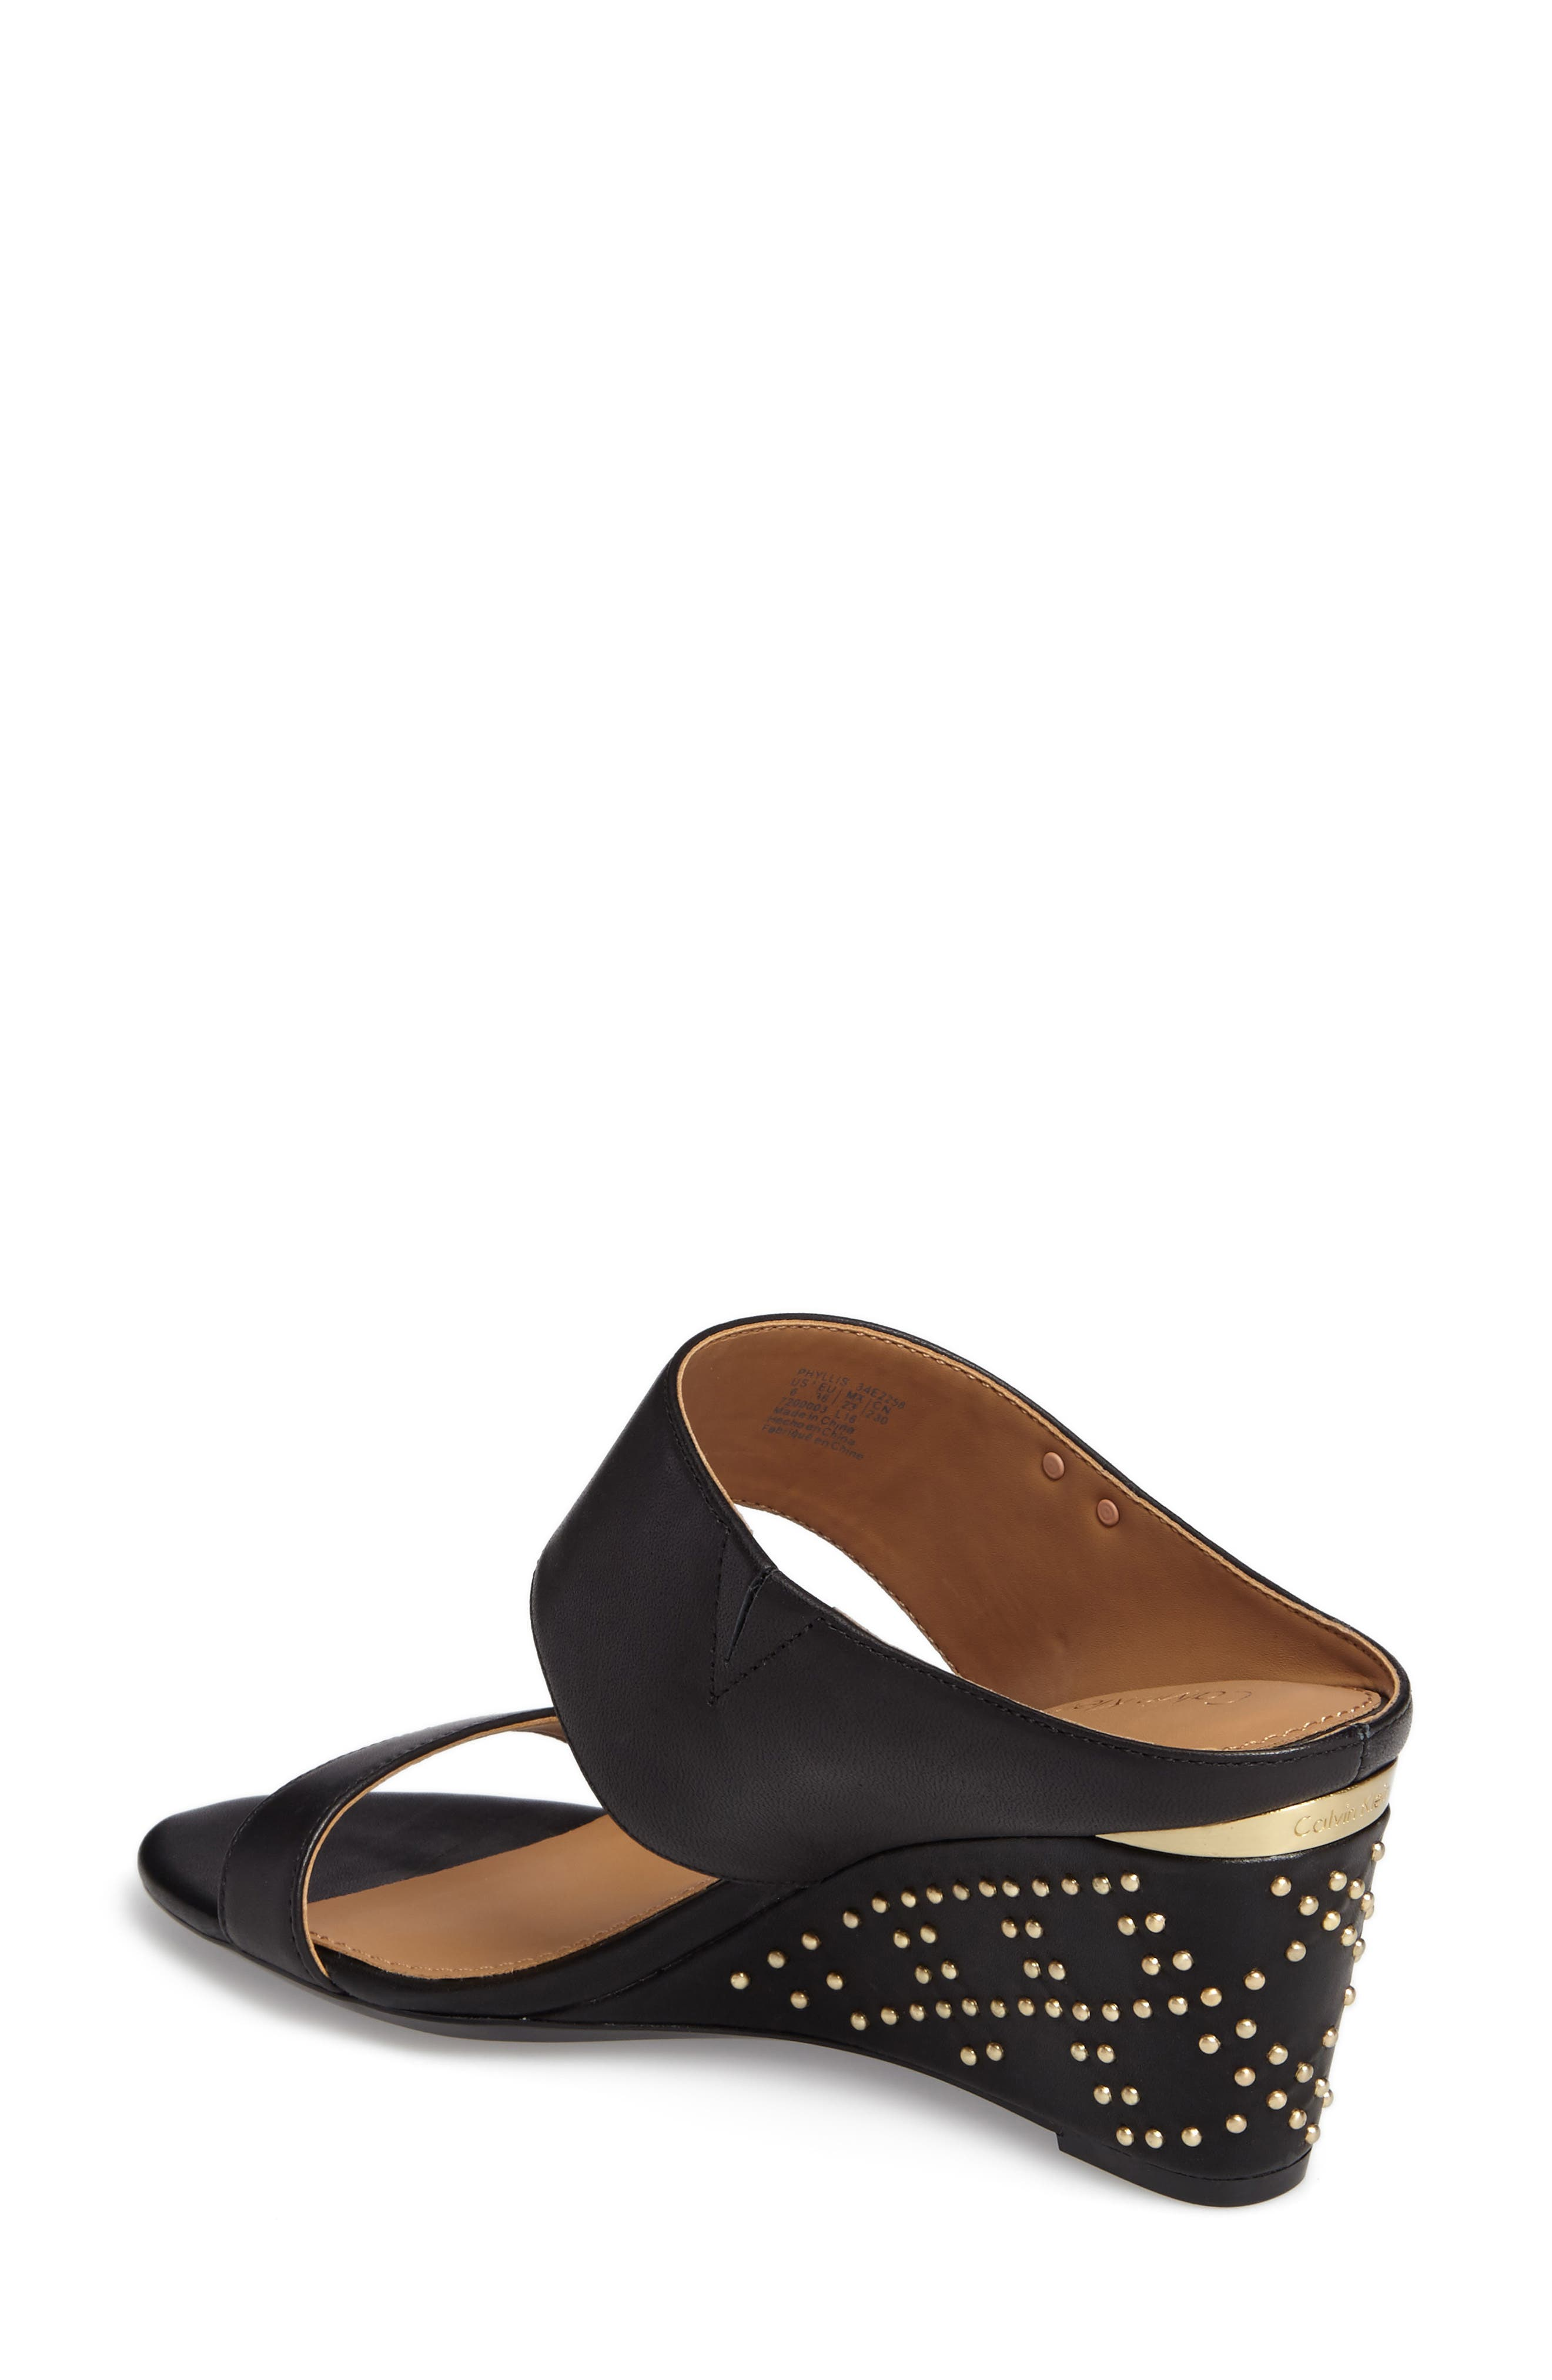 Phyllis Studded Wedge Sandal,                             Alternate thumbnail 2, color,                             Black Leather